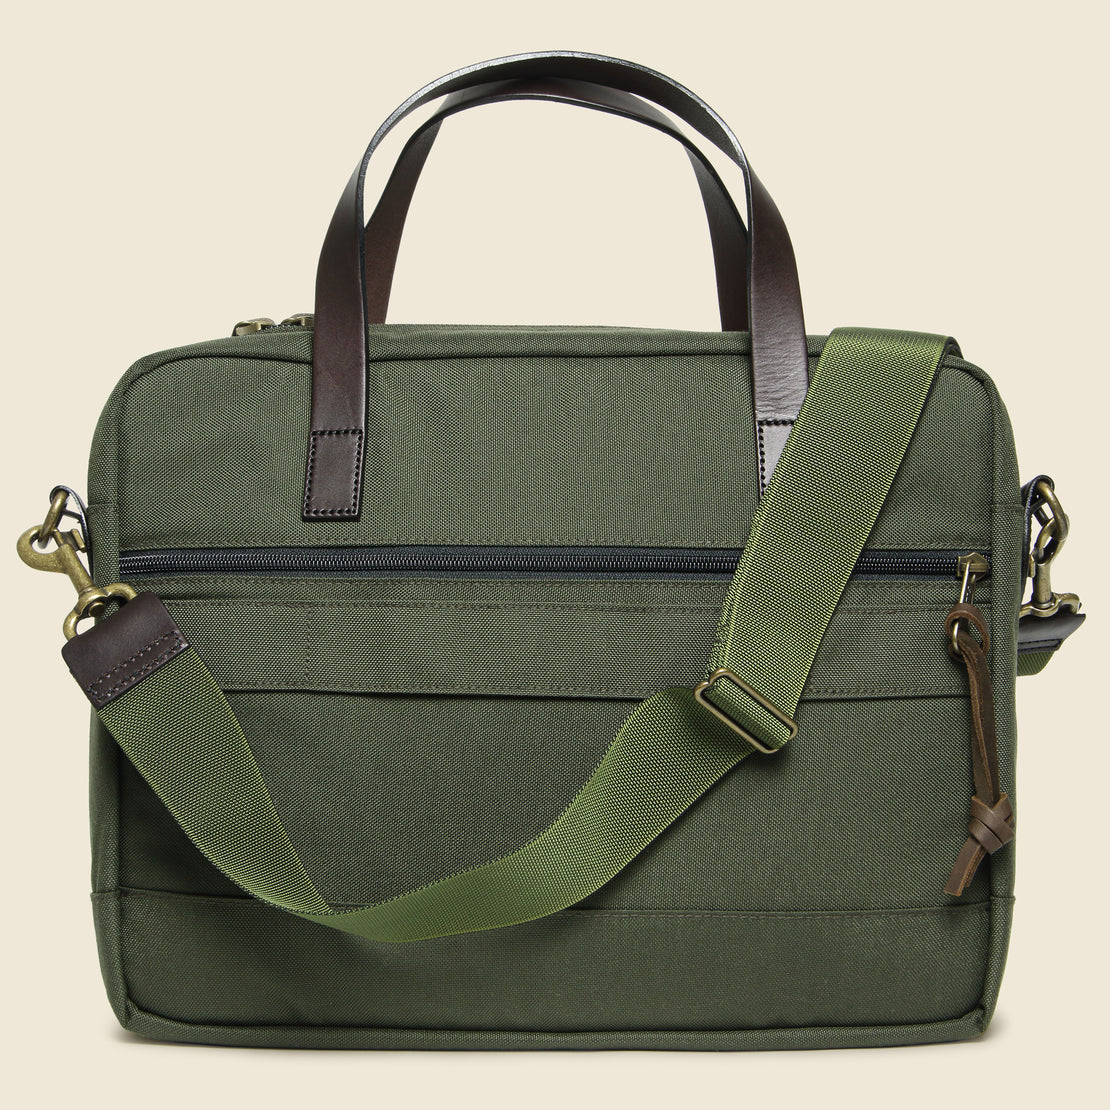 Dyden Briefcase - Otter Green